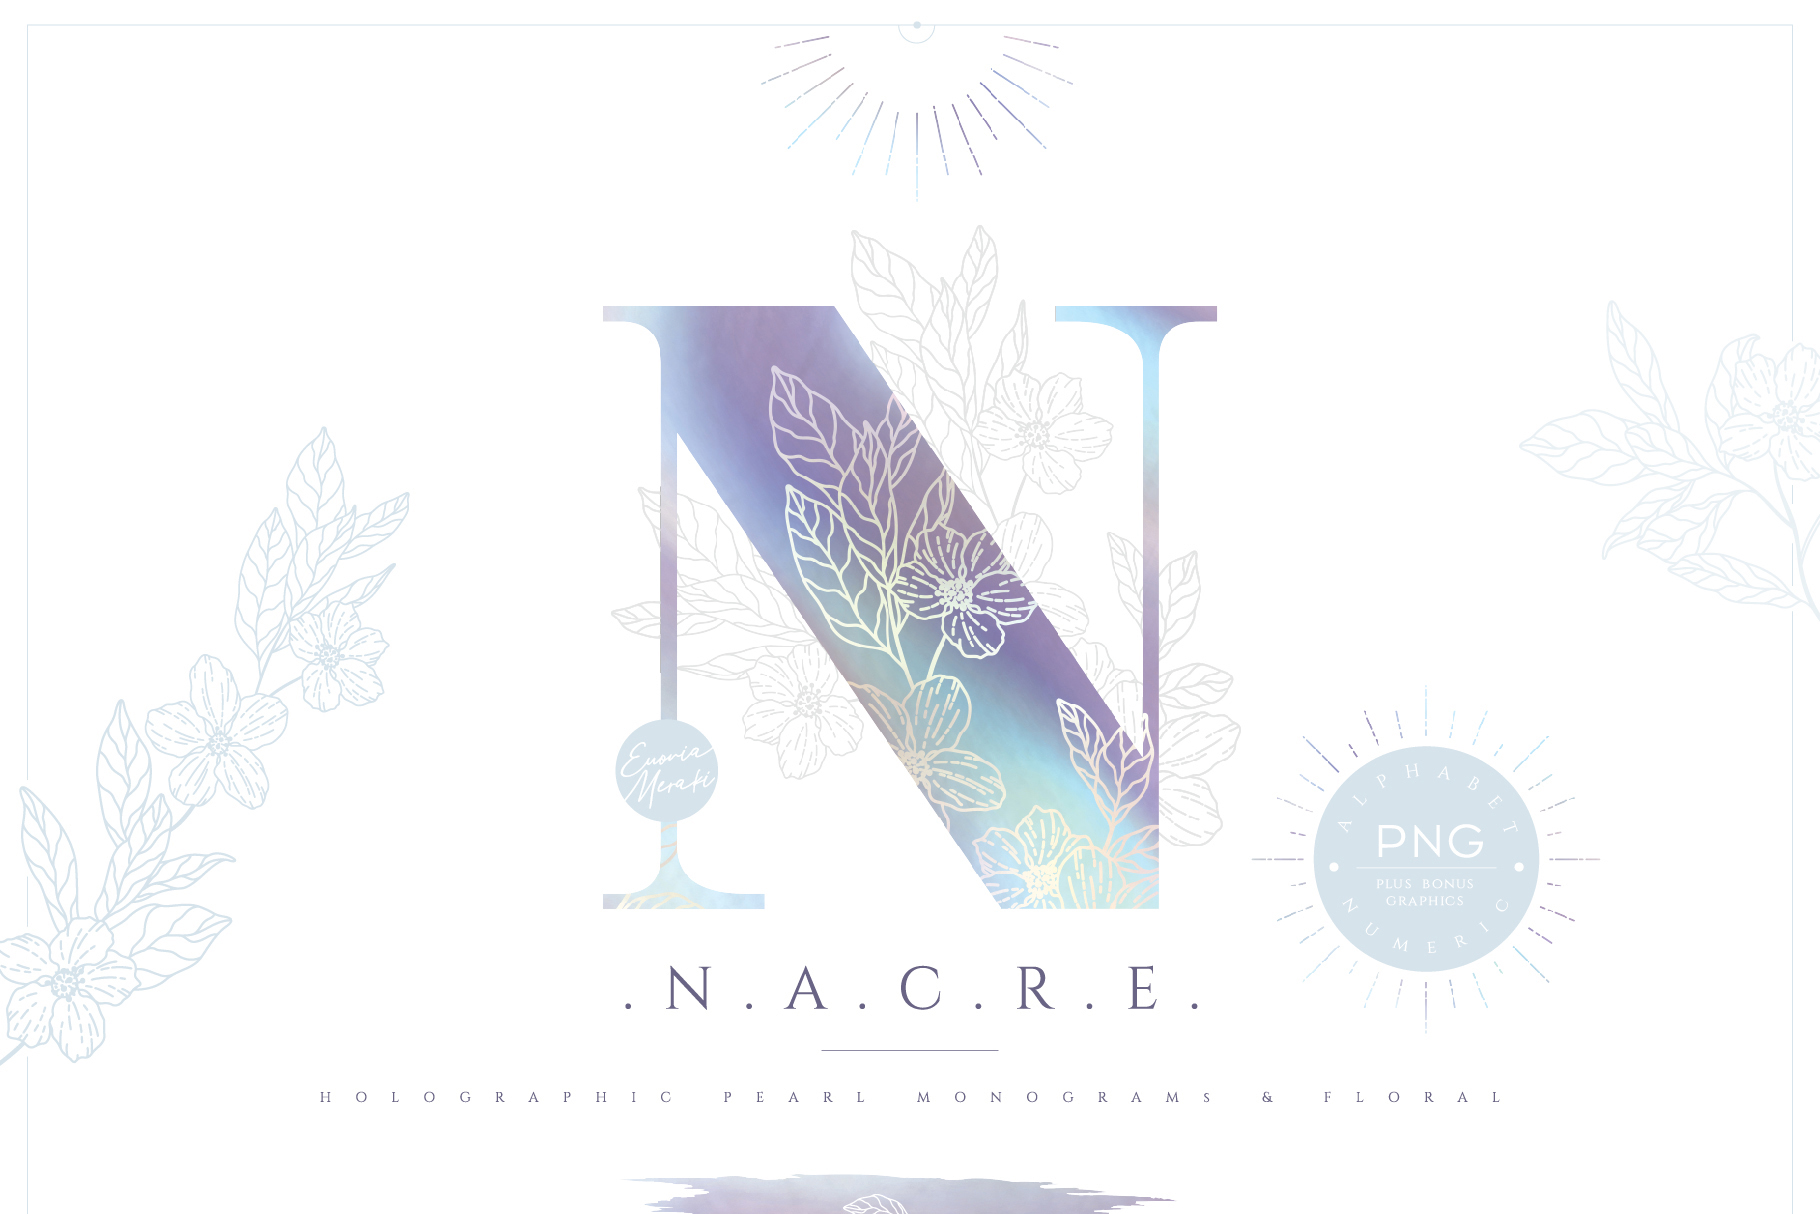 NACRE - monogram and floral graphic set example image 1